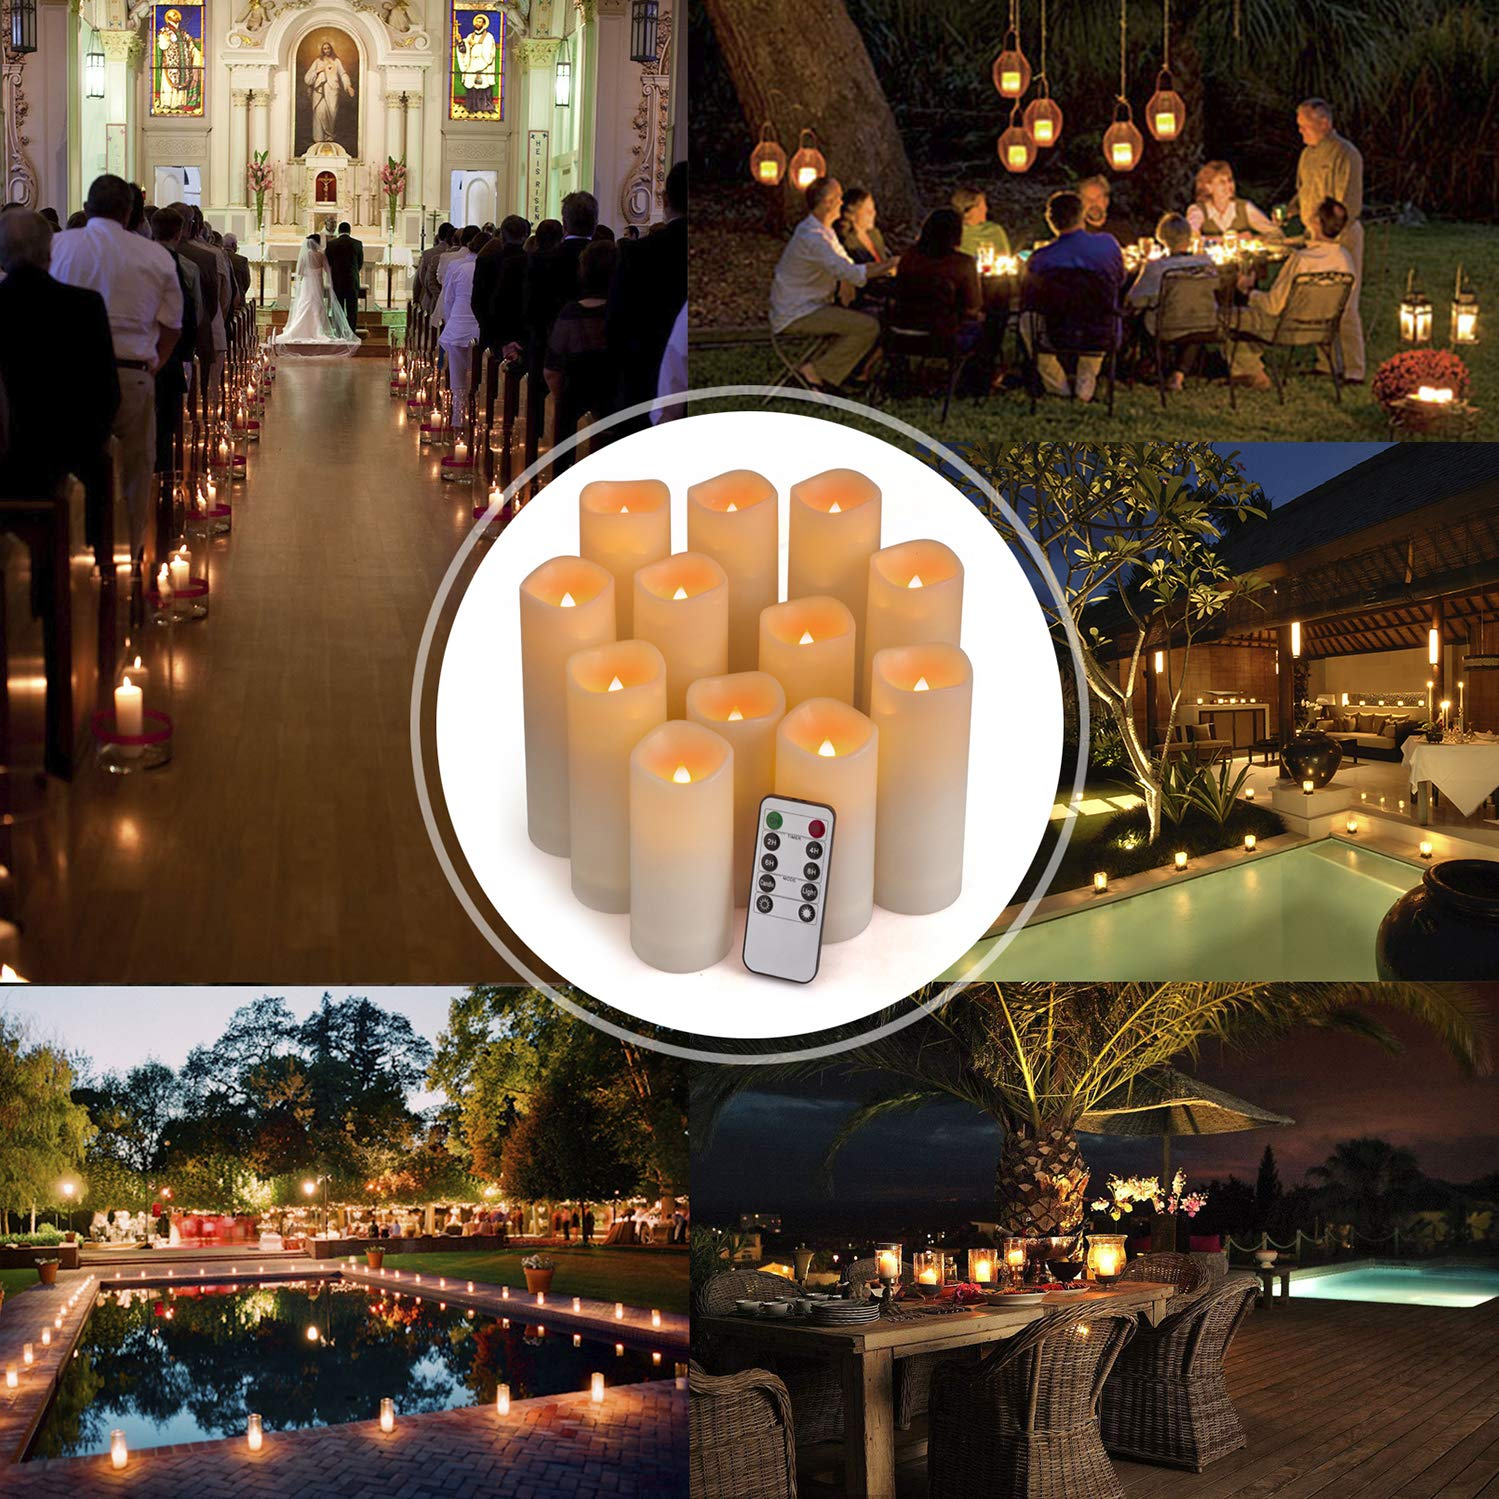 Batteries not Included H 4 5 6 7 x D 2.2 Ivory Resin Candles with Remote Timer Waterproof Outdoor Indoor Candles Aignis Flameless Candles Led Candles Set of 12